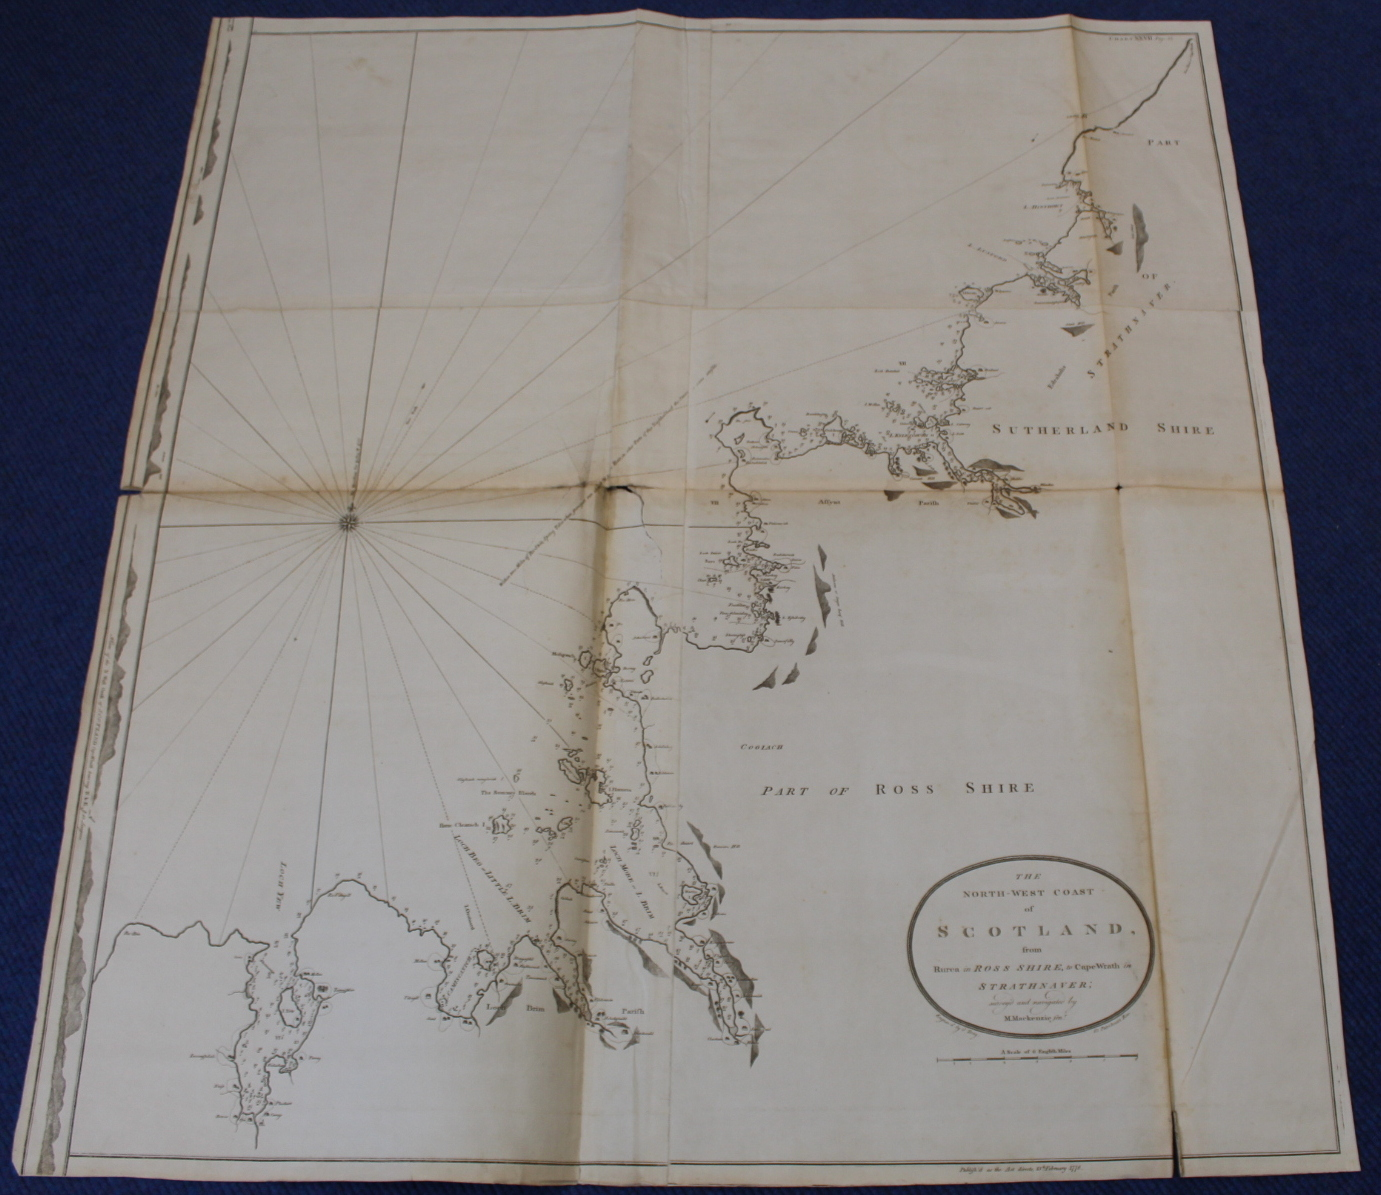 MACKENZIE MURDOCH (SNR.).A General Chart of the West Coast & Western Islands of Scotland from - Image 34 of 66